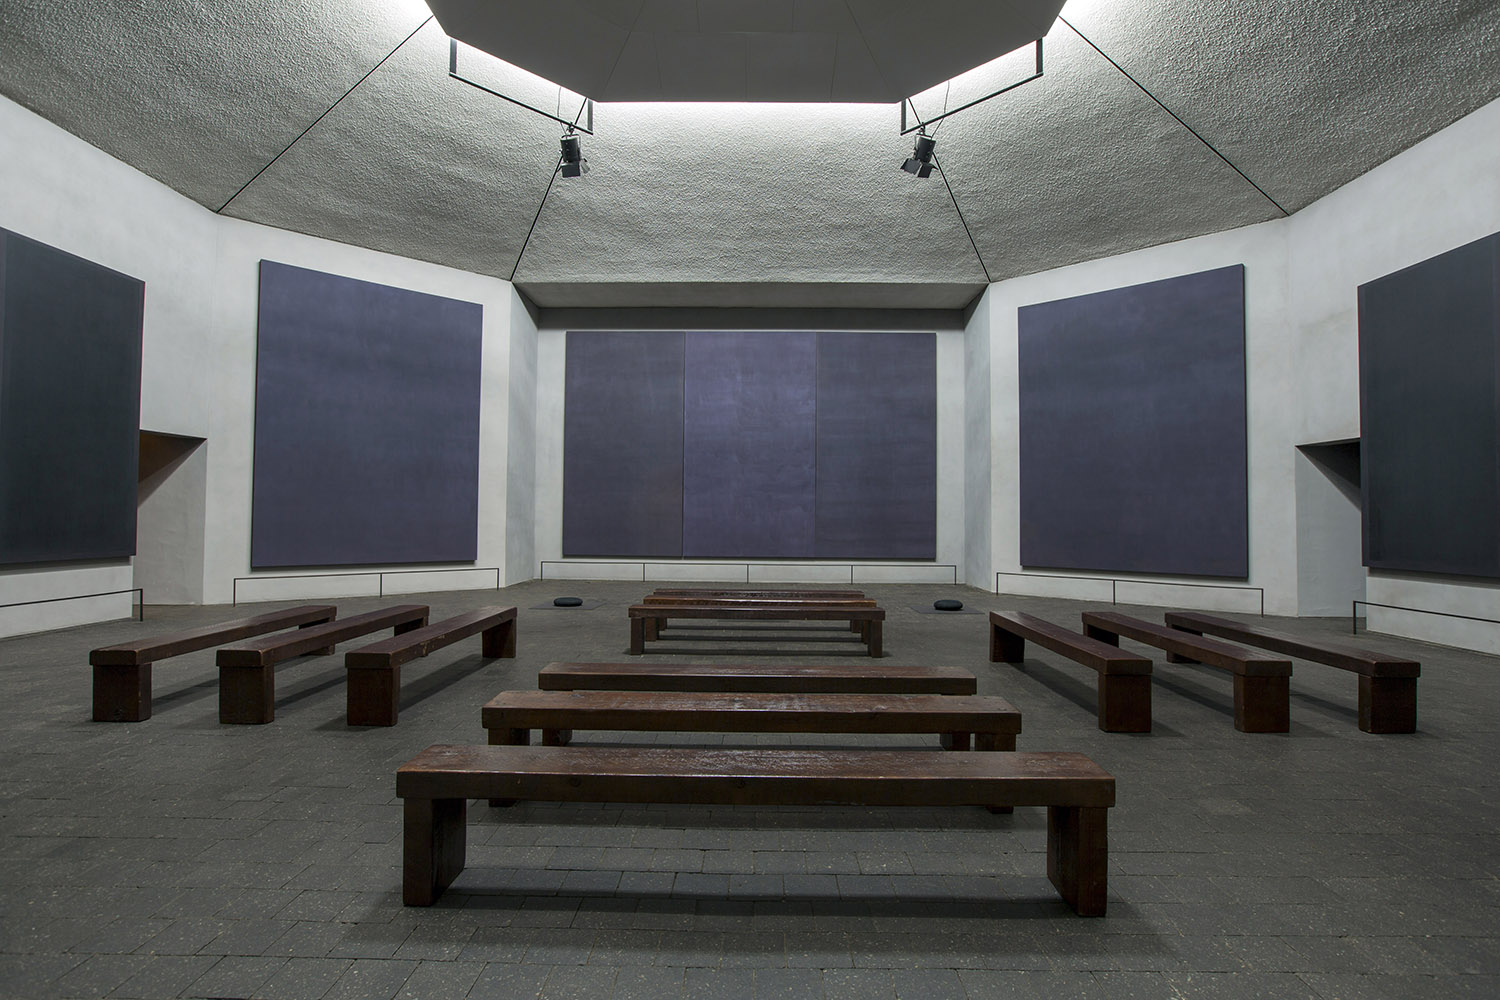 Mark Rothko, Rothko Chapel Paintings, 1964 - 1967